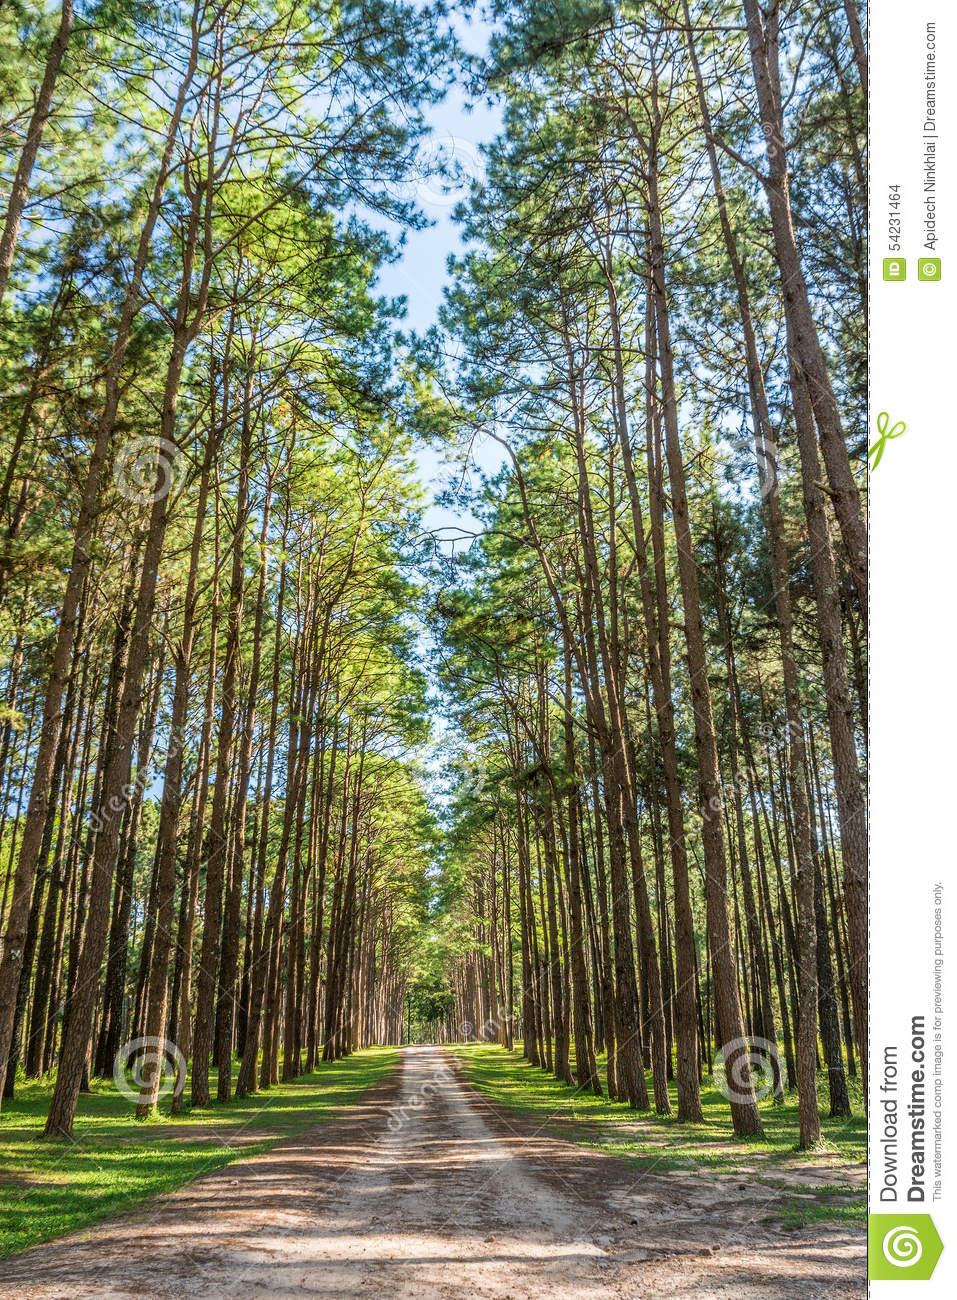 Flower garden under pine trees : Landscape view of road and pine trees in botanical garden stock photo